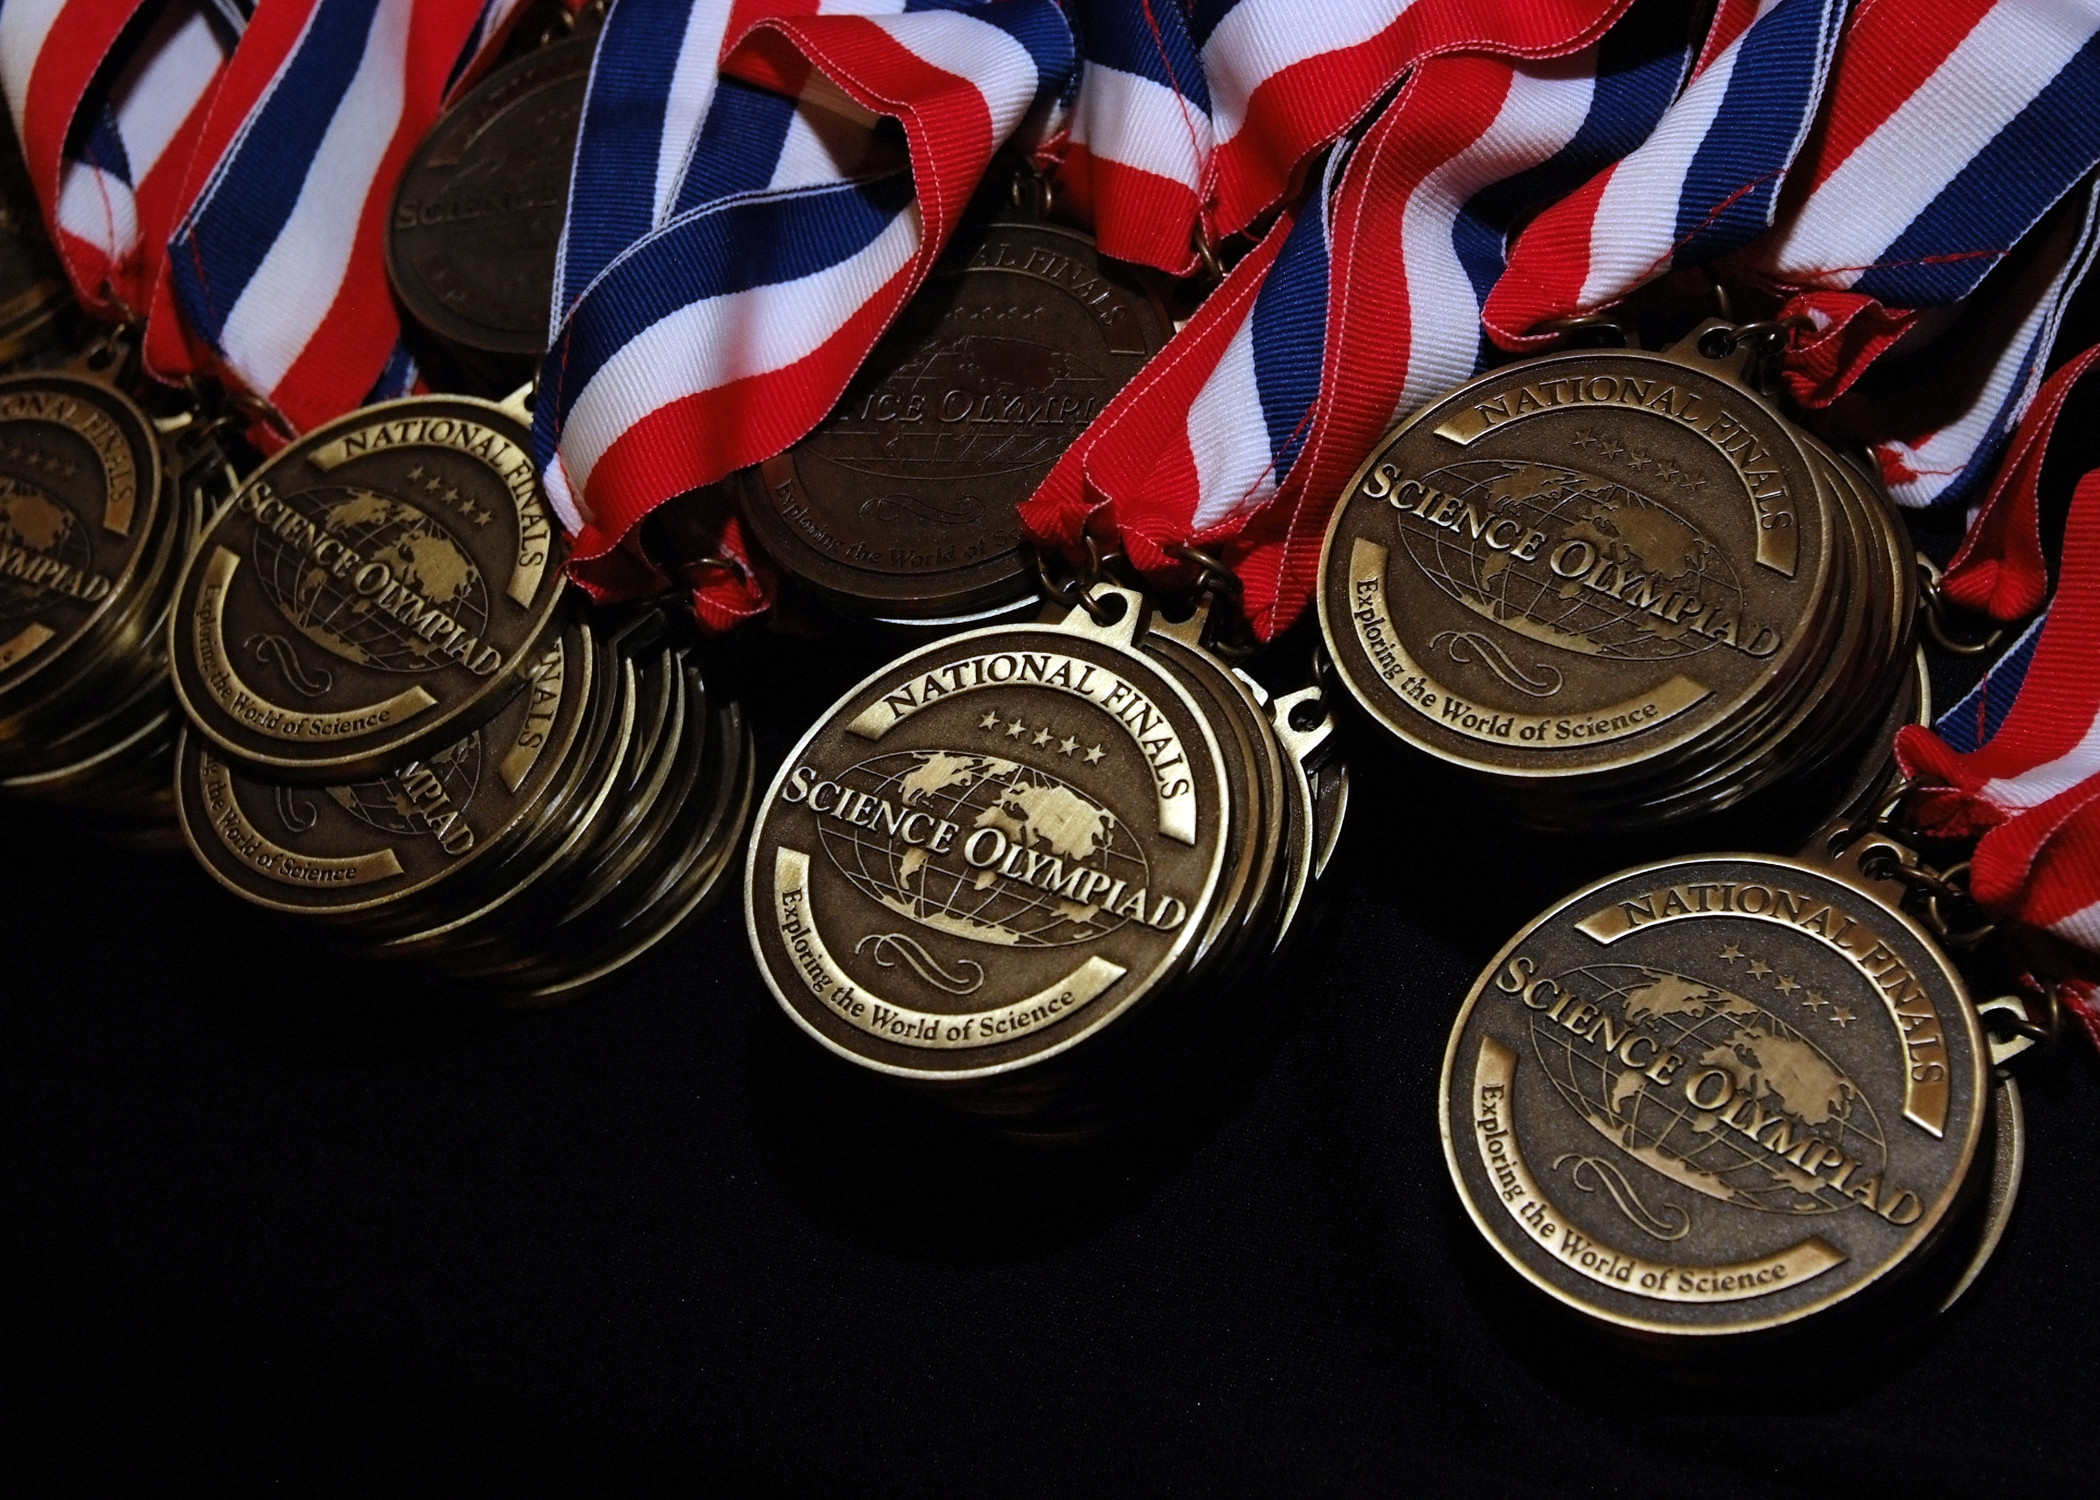 National Tournament Medals for Forestry